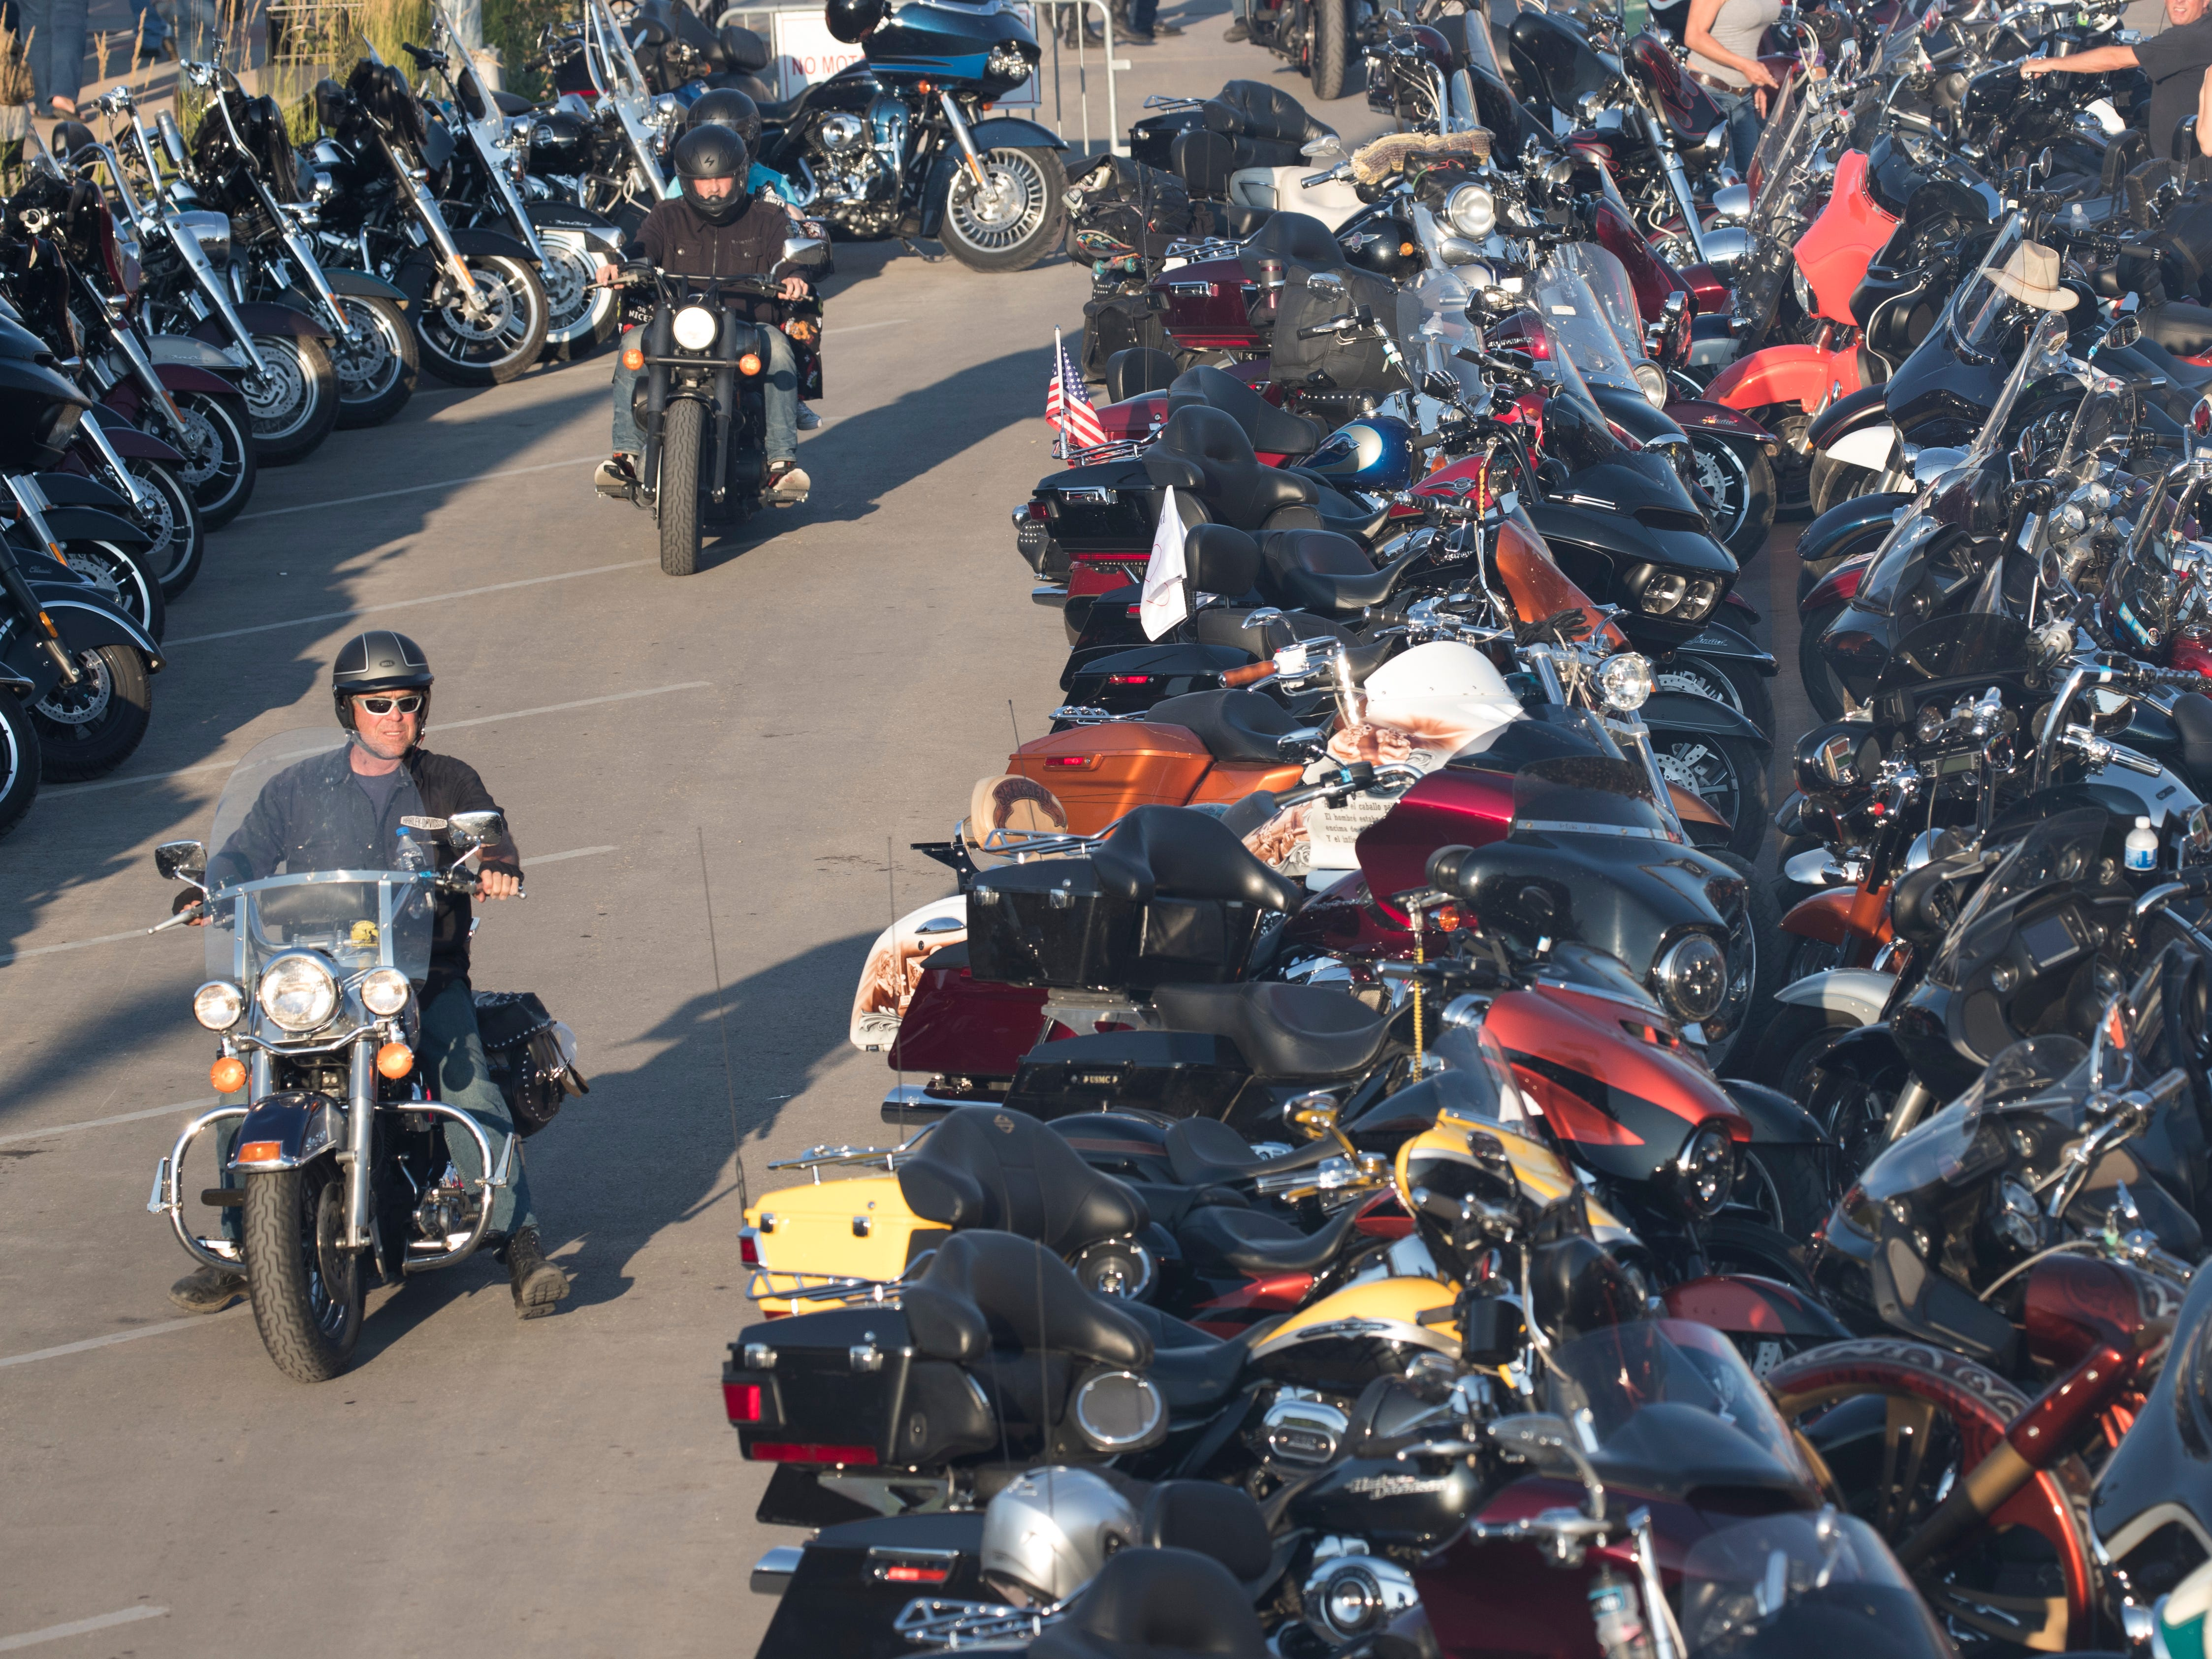 2018: Motorcyclists look for parking spaces downtown during the Sturgis Motorcycle Rally.